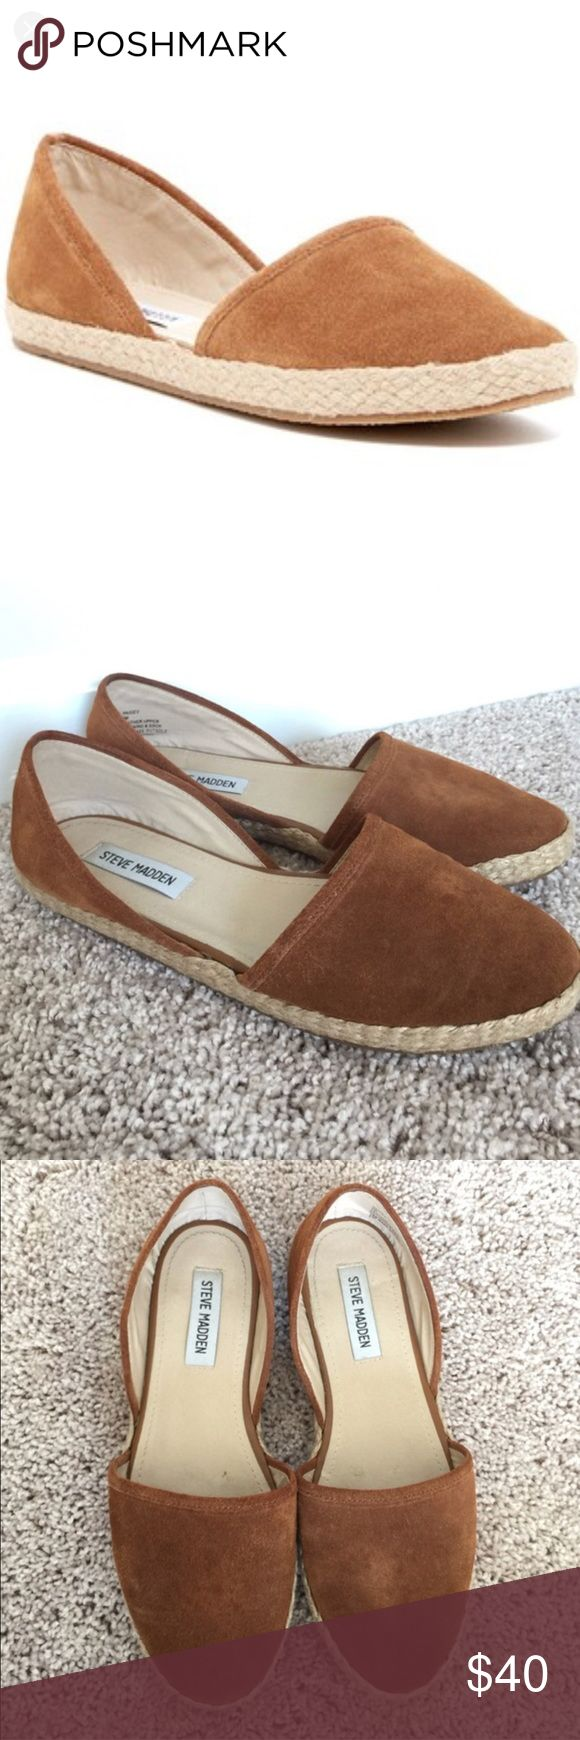 Steve Madden Paigy Camel Espadrilles Super comfortable Steve Madden espadrilles. Previously loved but still lots of life in them. Overall good condition, the last photo shows a little sign of wear on the burlap material near the very bottom sole. Steve Madden Shoes Espadrilles